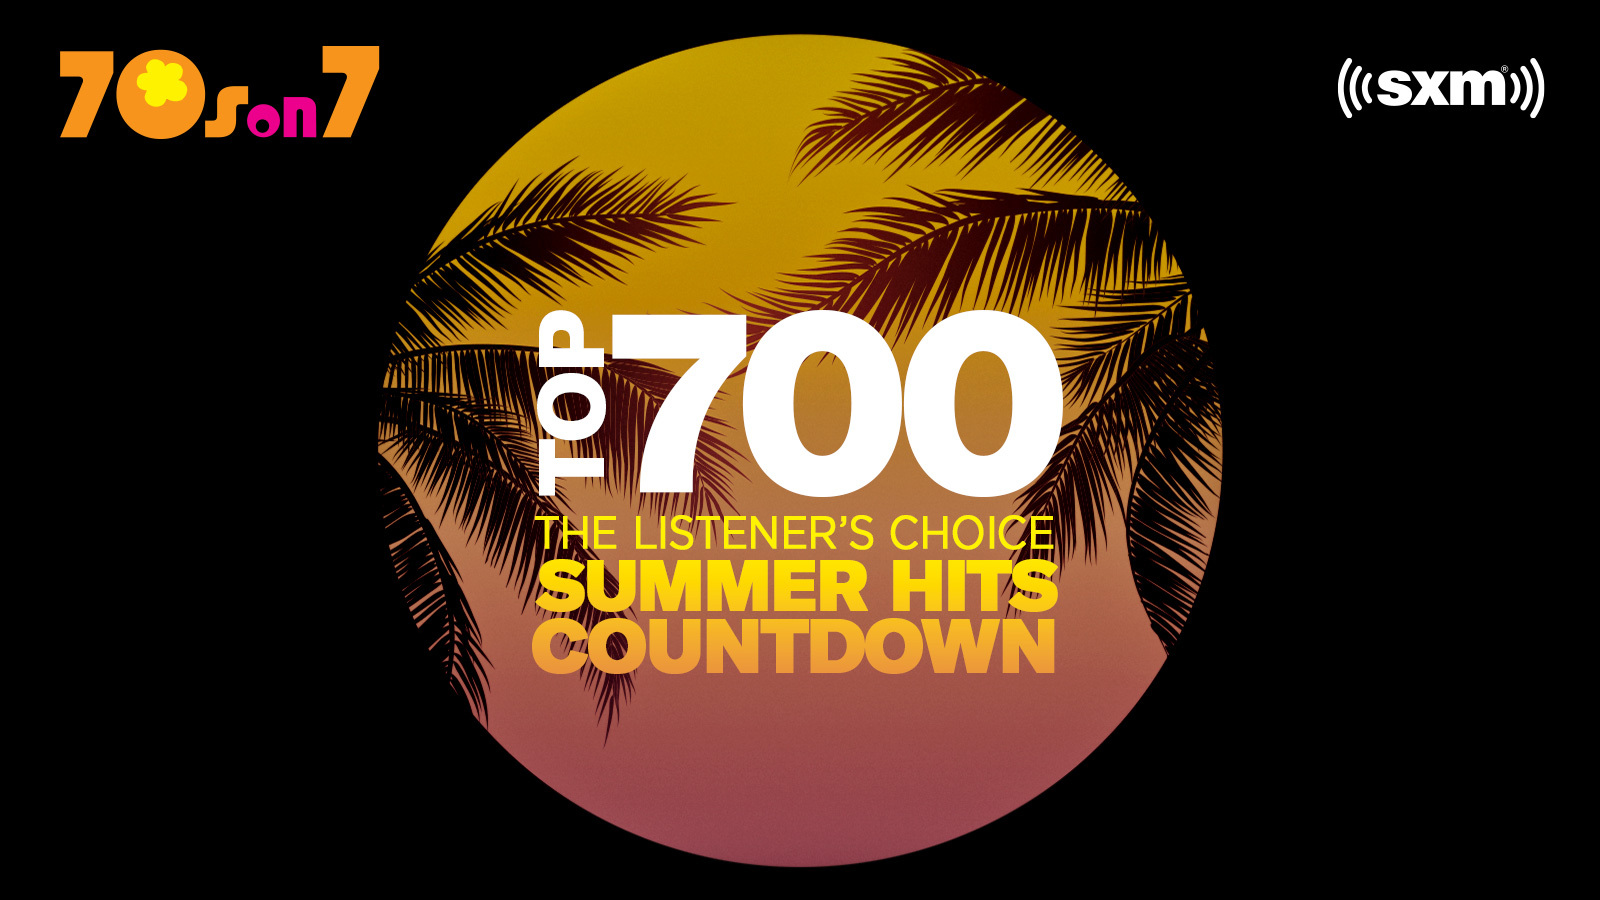 Vote for your favorite summer hits of the 1970s & hear them throughout Fourth of July weekend